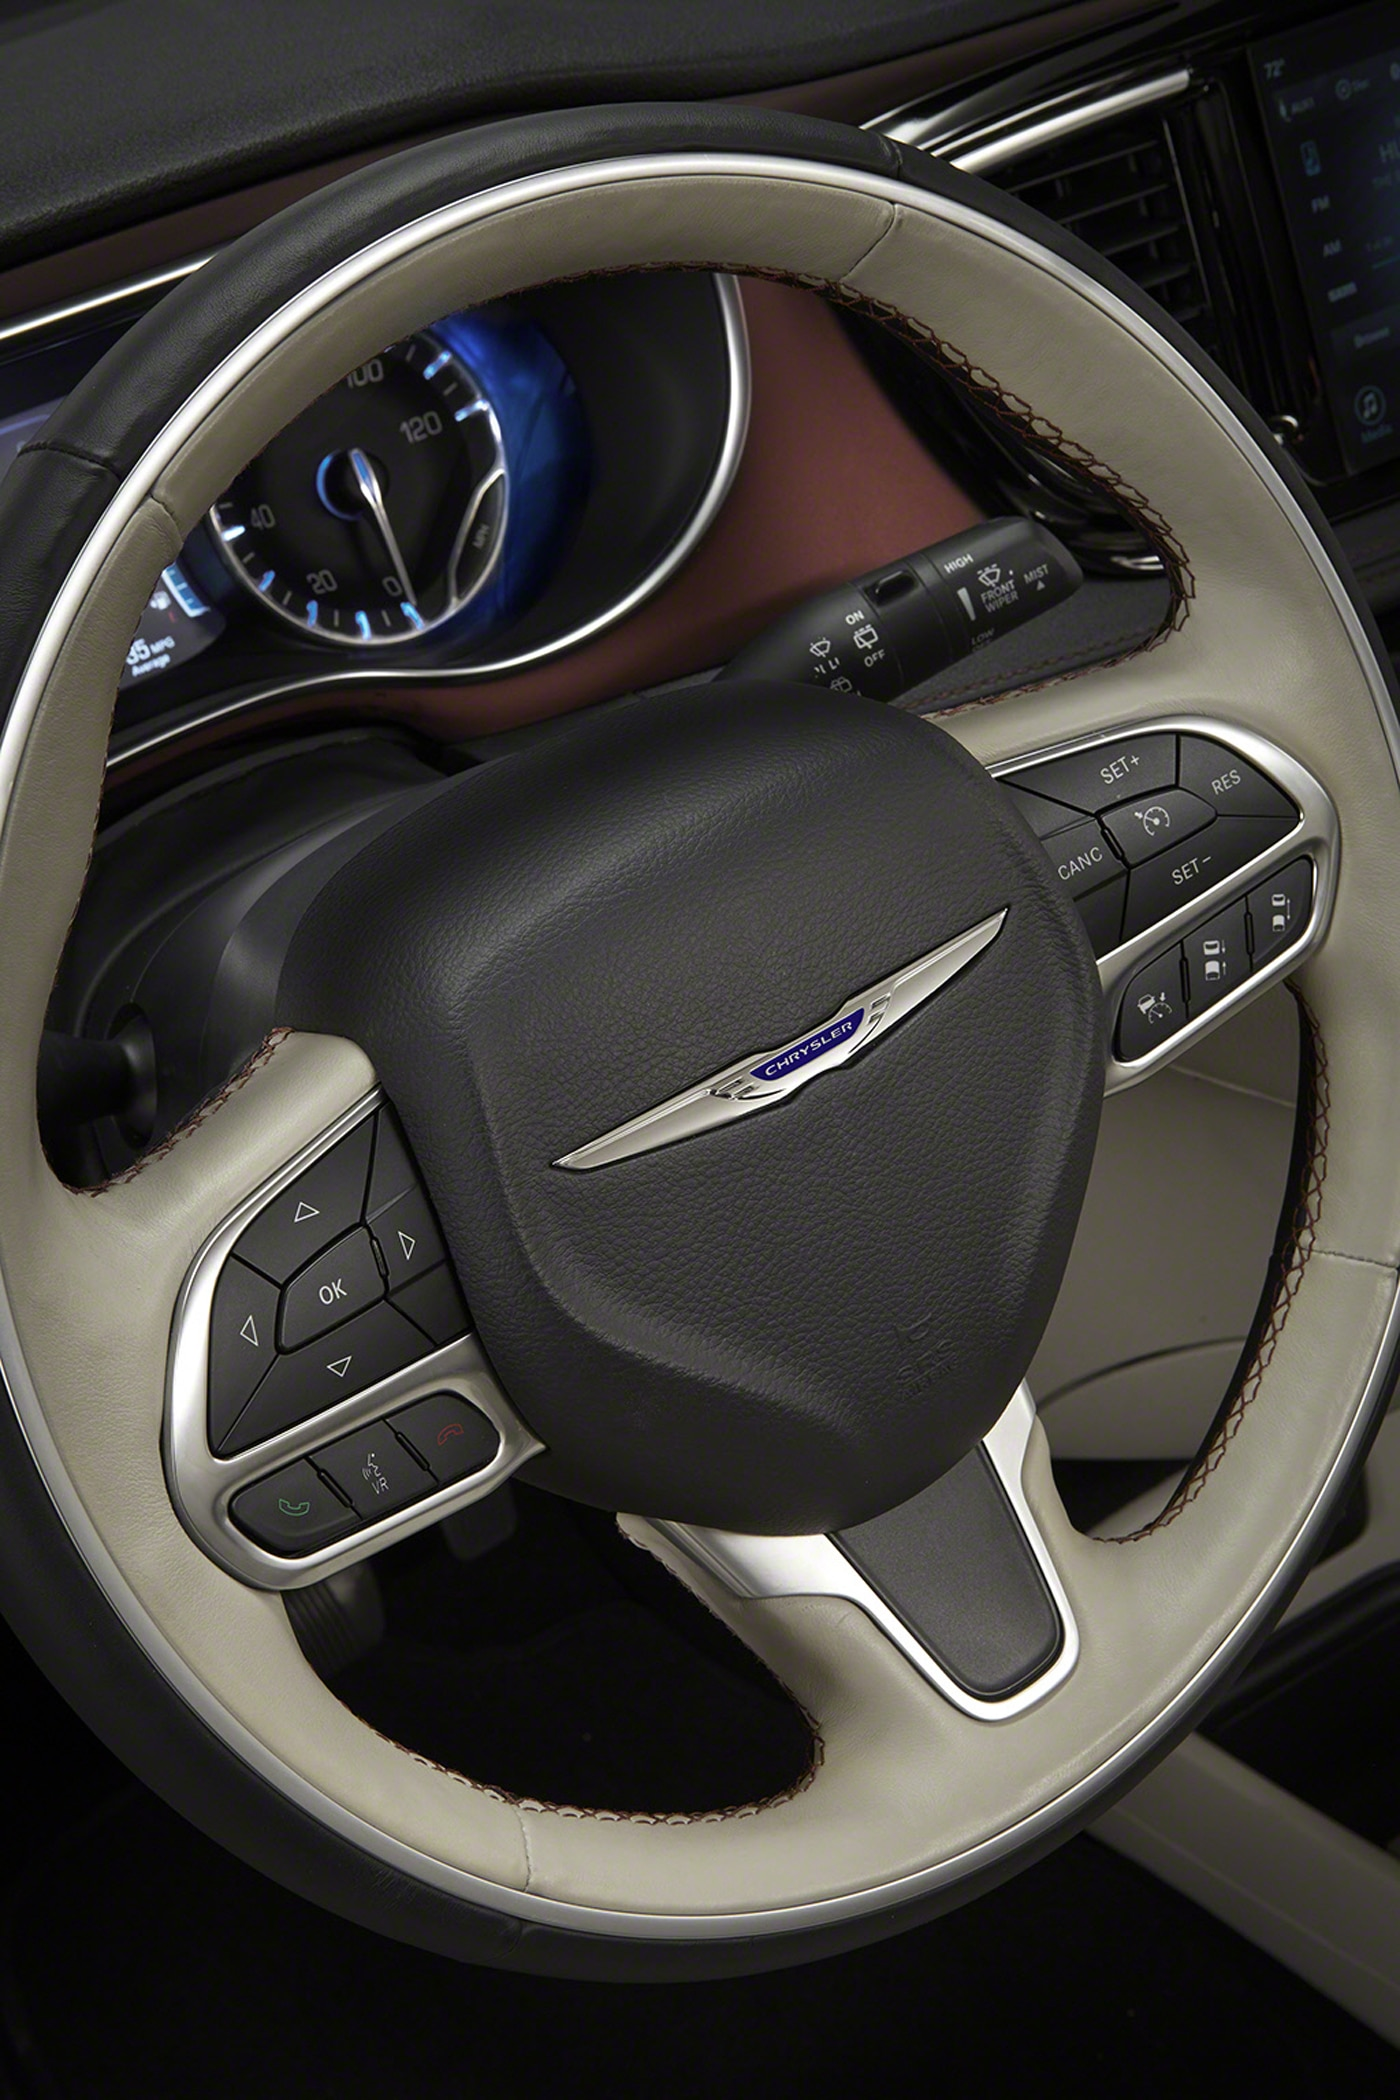 2017 Chrysler Pacifica Rated at 18/28 MPG | Automobile ...